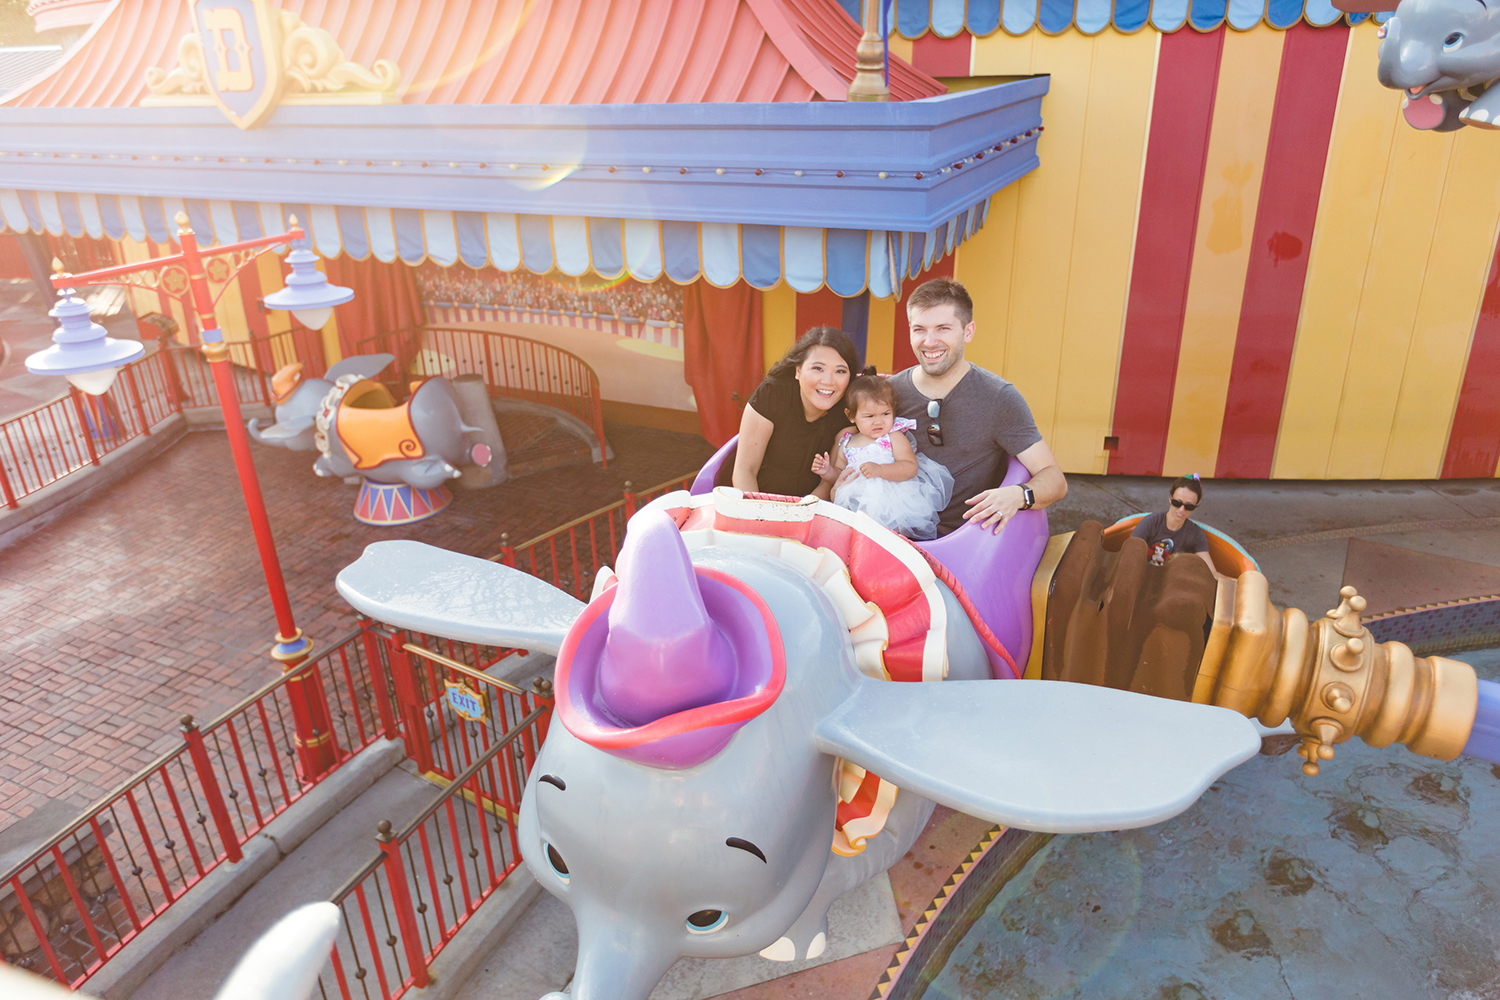 Disney Family Session - Jaime DiOrio Photography - Family on Dumbo Ride photo - Magic Kingdom Family Session.jpg